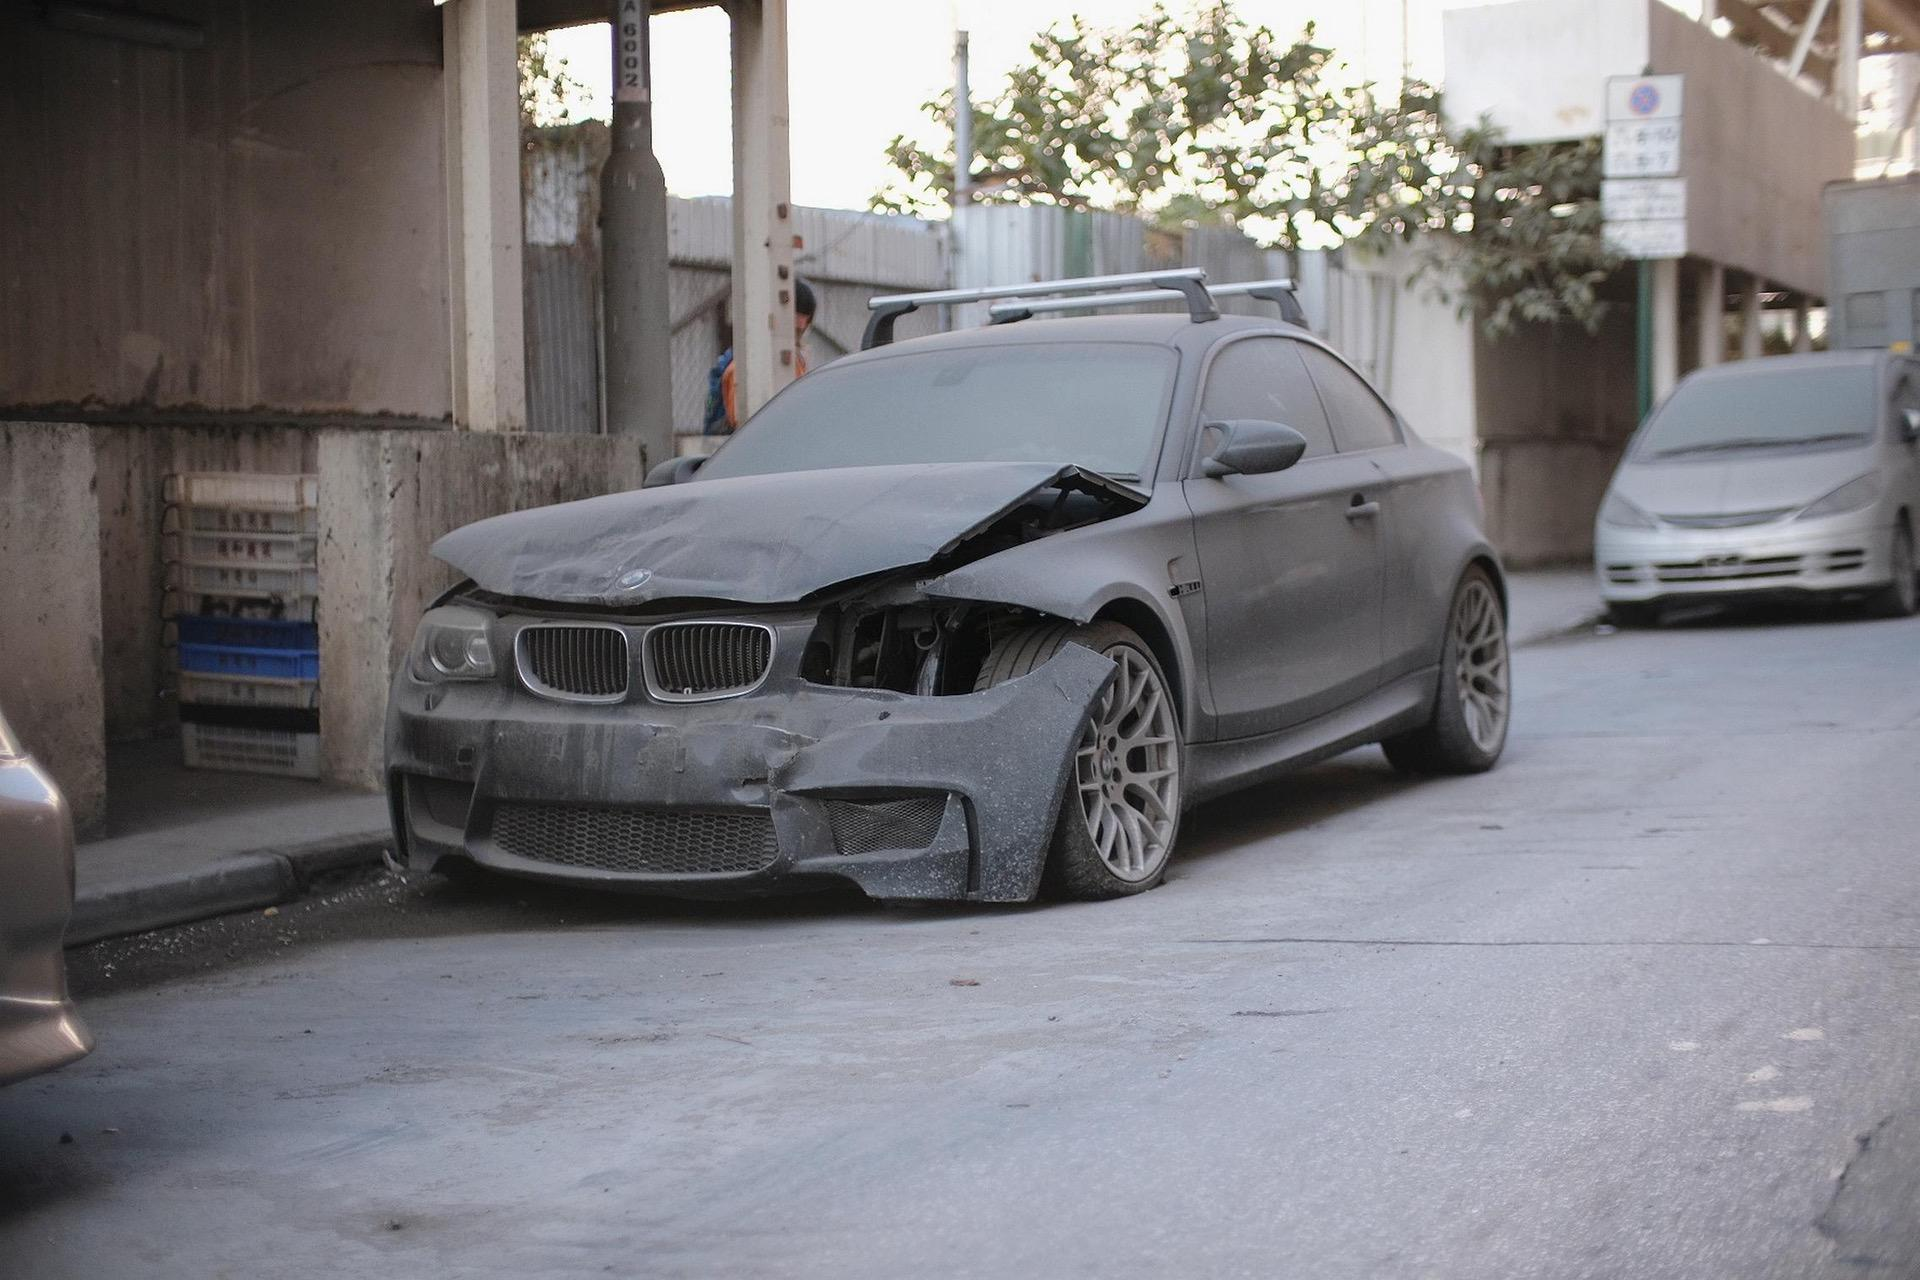 Wrecked_BMW_1M_Coupe_0006